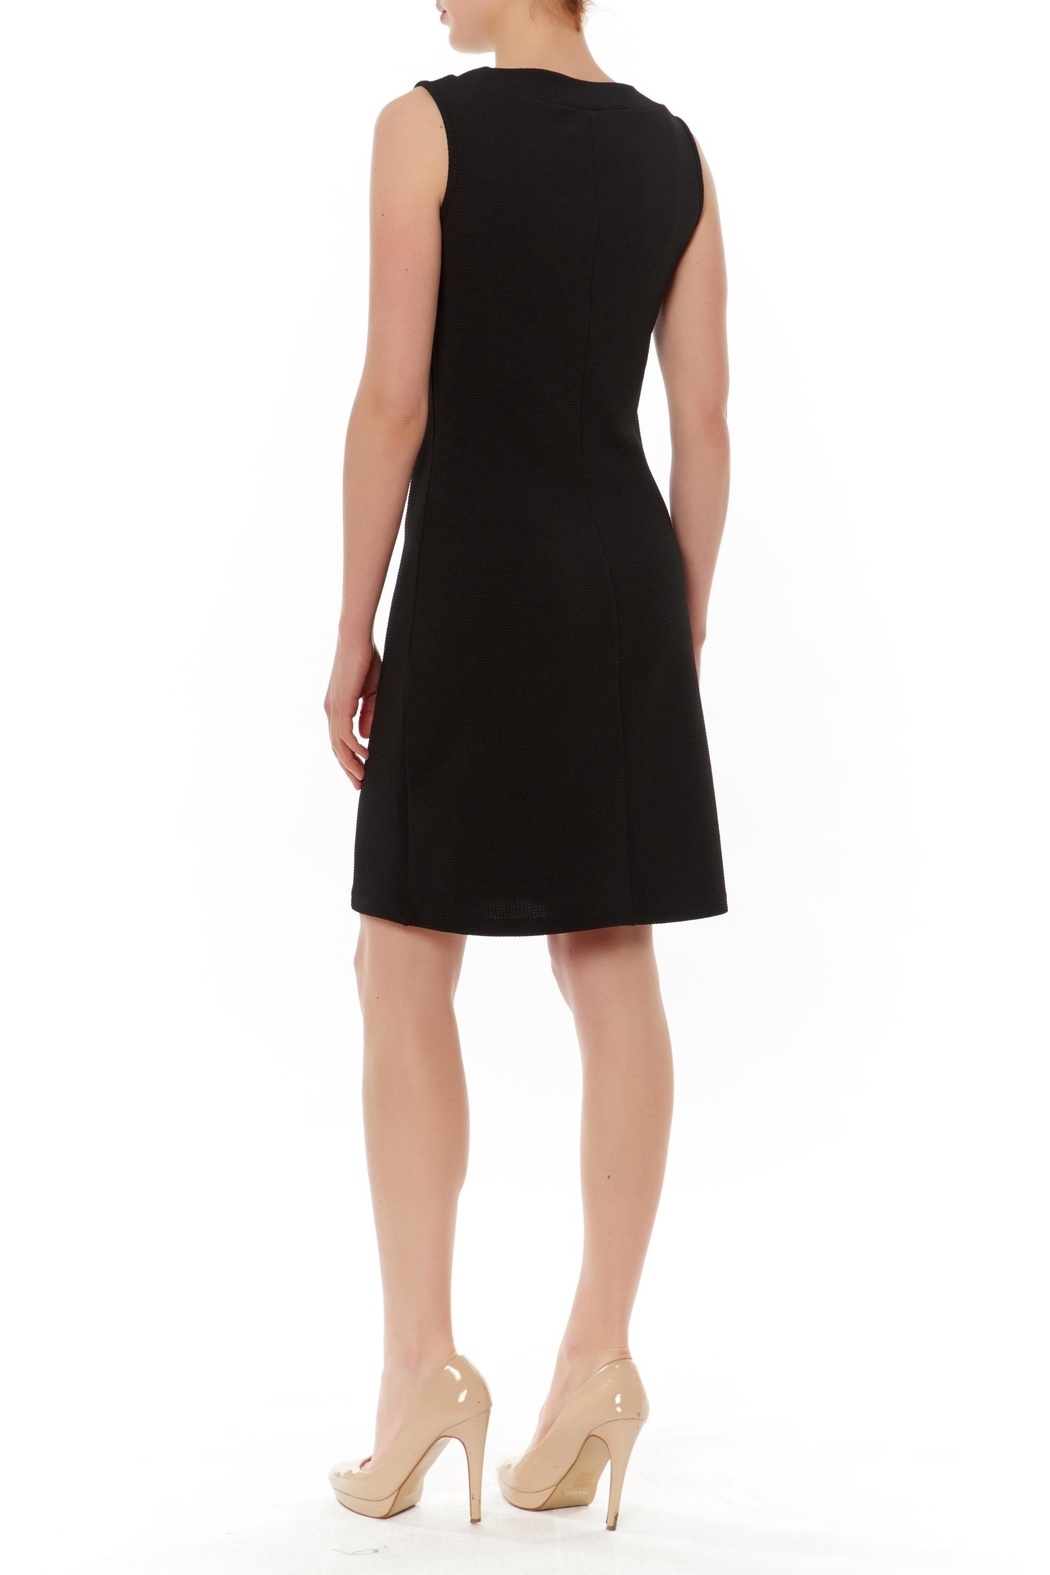 PAPILLON BLANC Black Sleeveless Shift Dress - Front Full Image